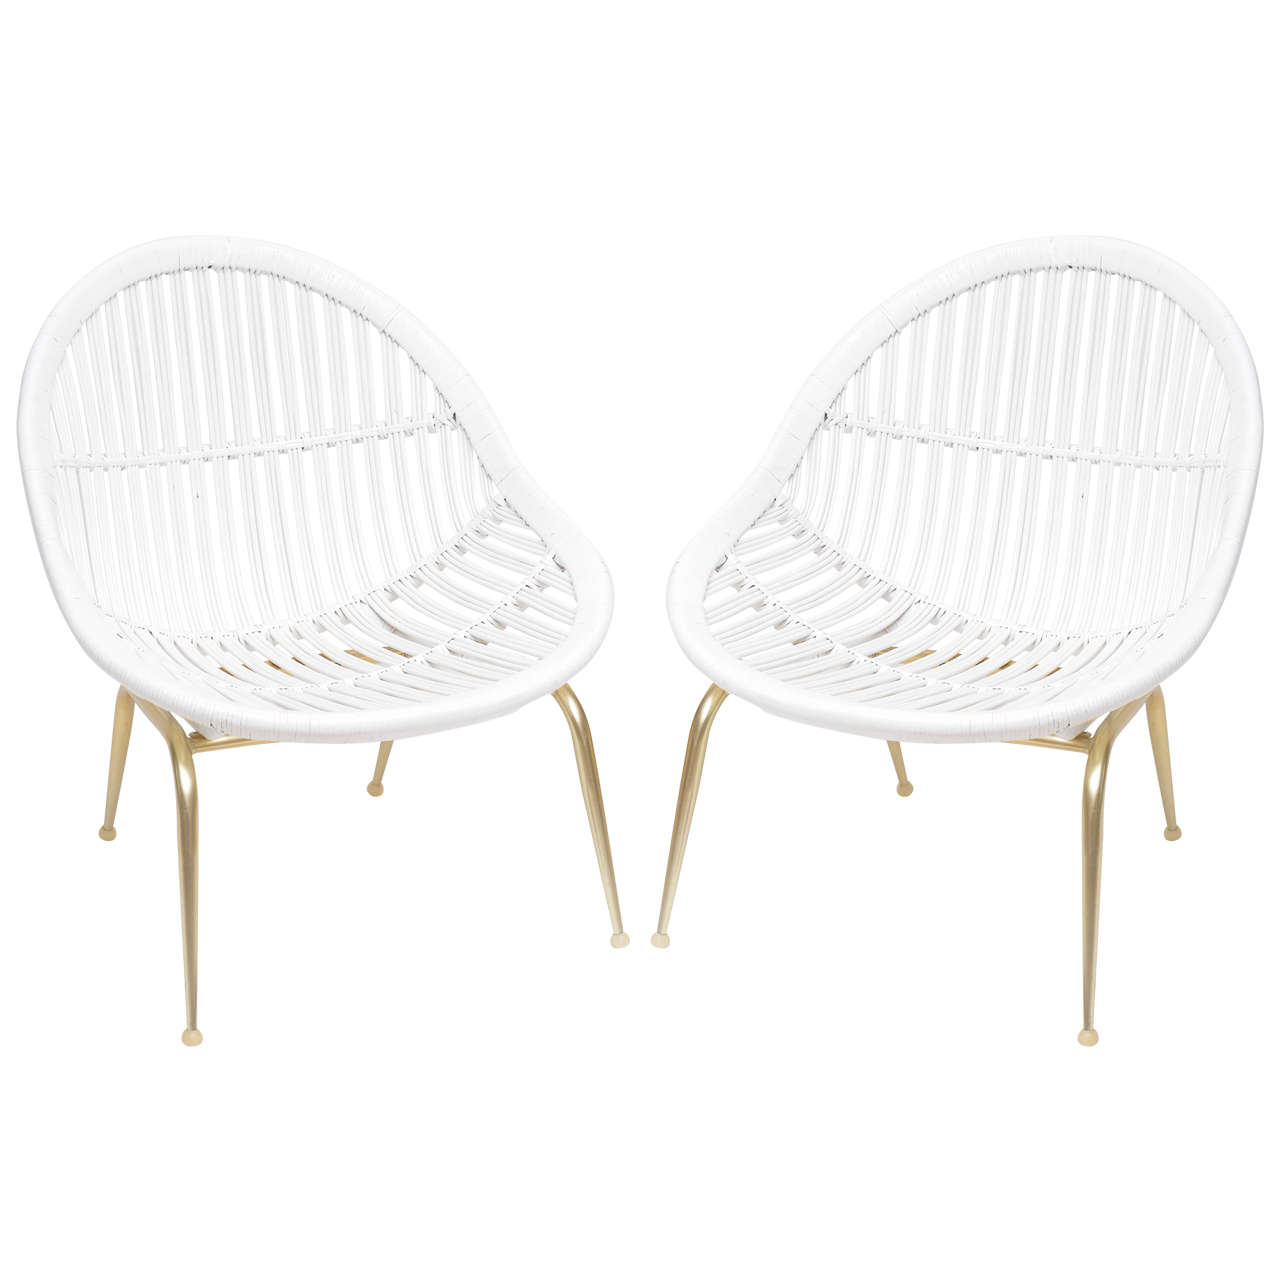 Anodized Aluminum And Bamboo Lounge Chairs For Sale At 1stdibs